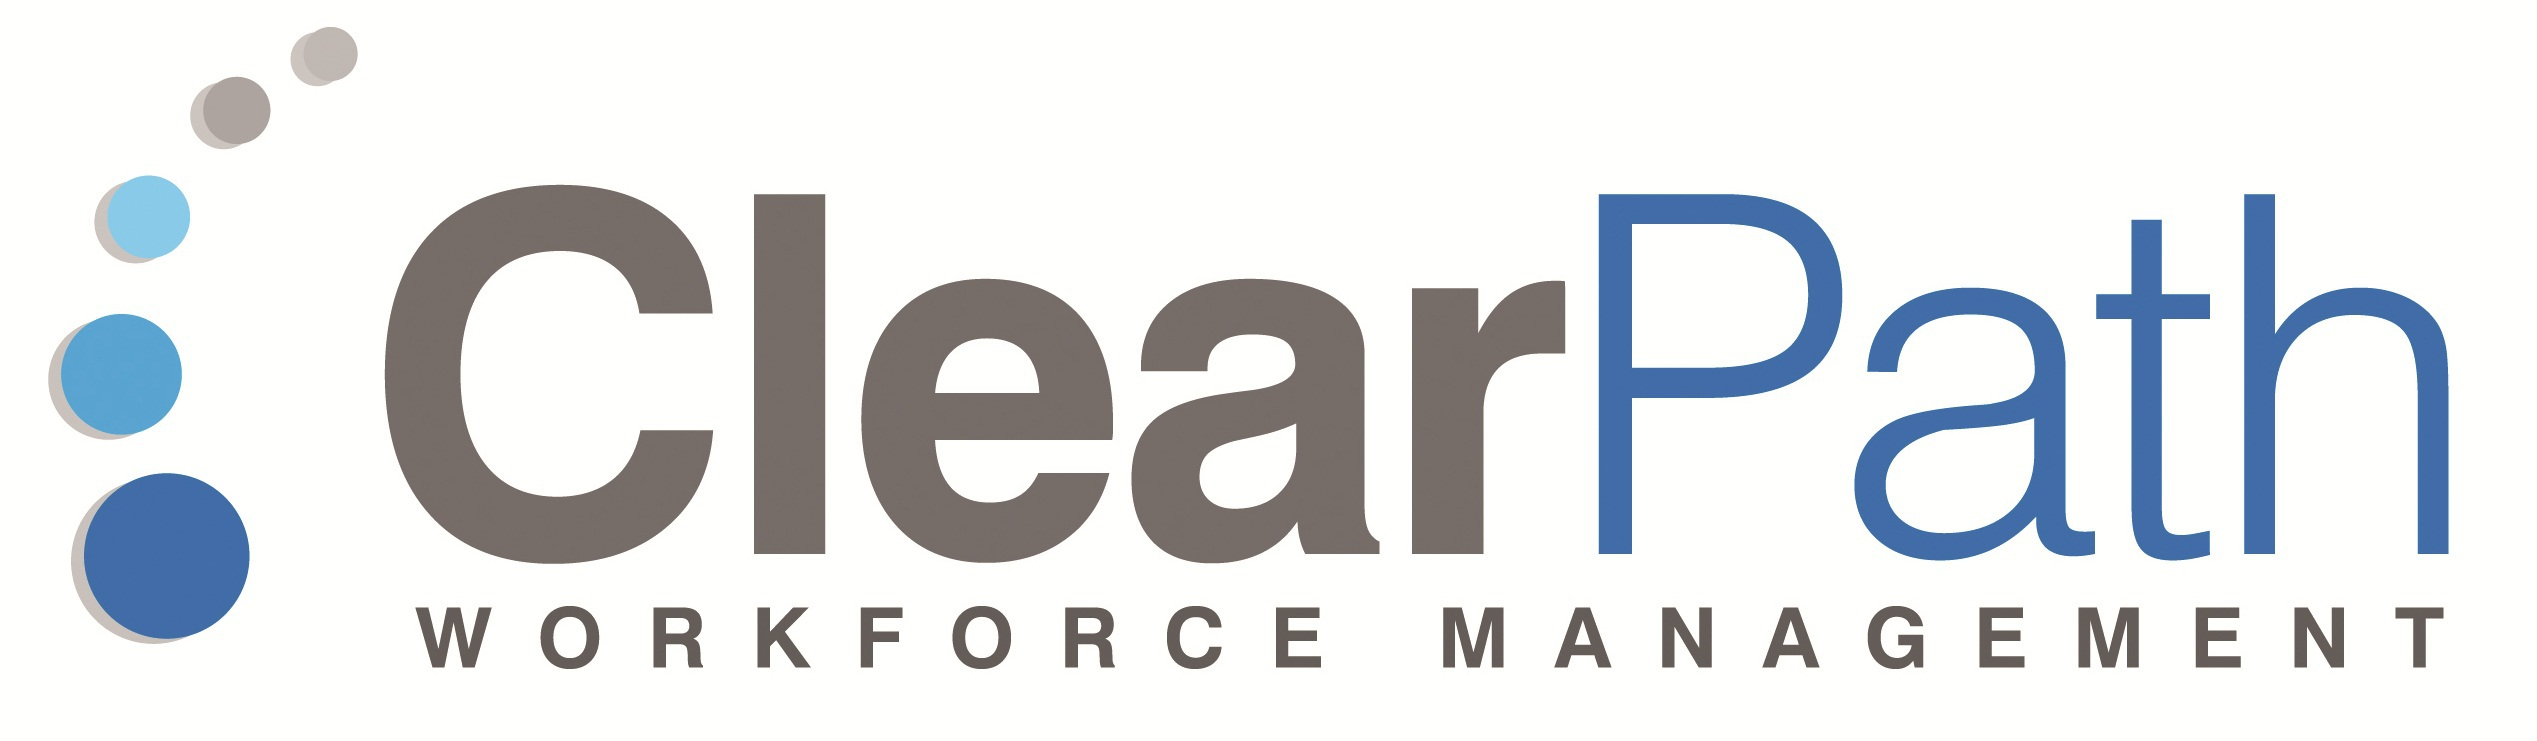 ClearPath Workforce Management